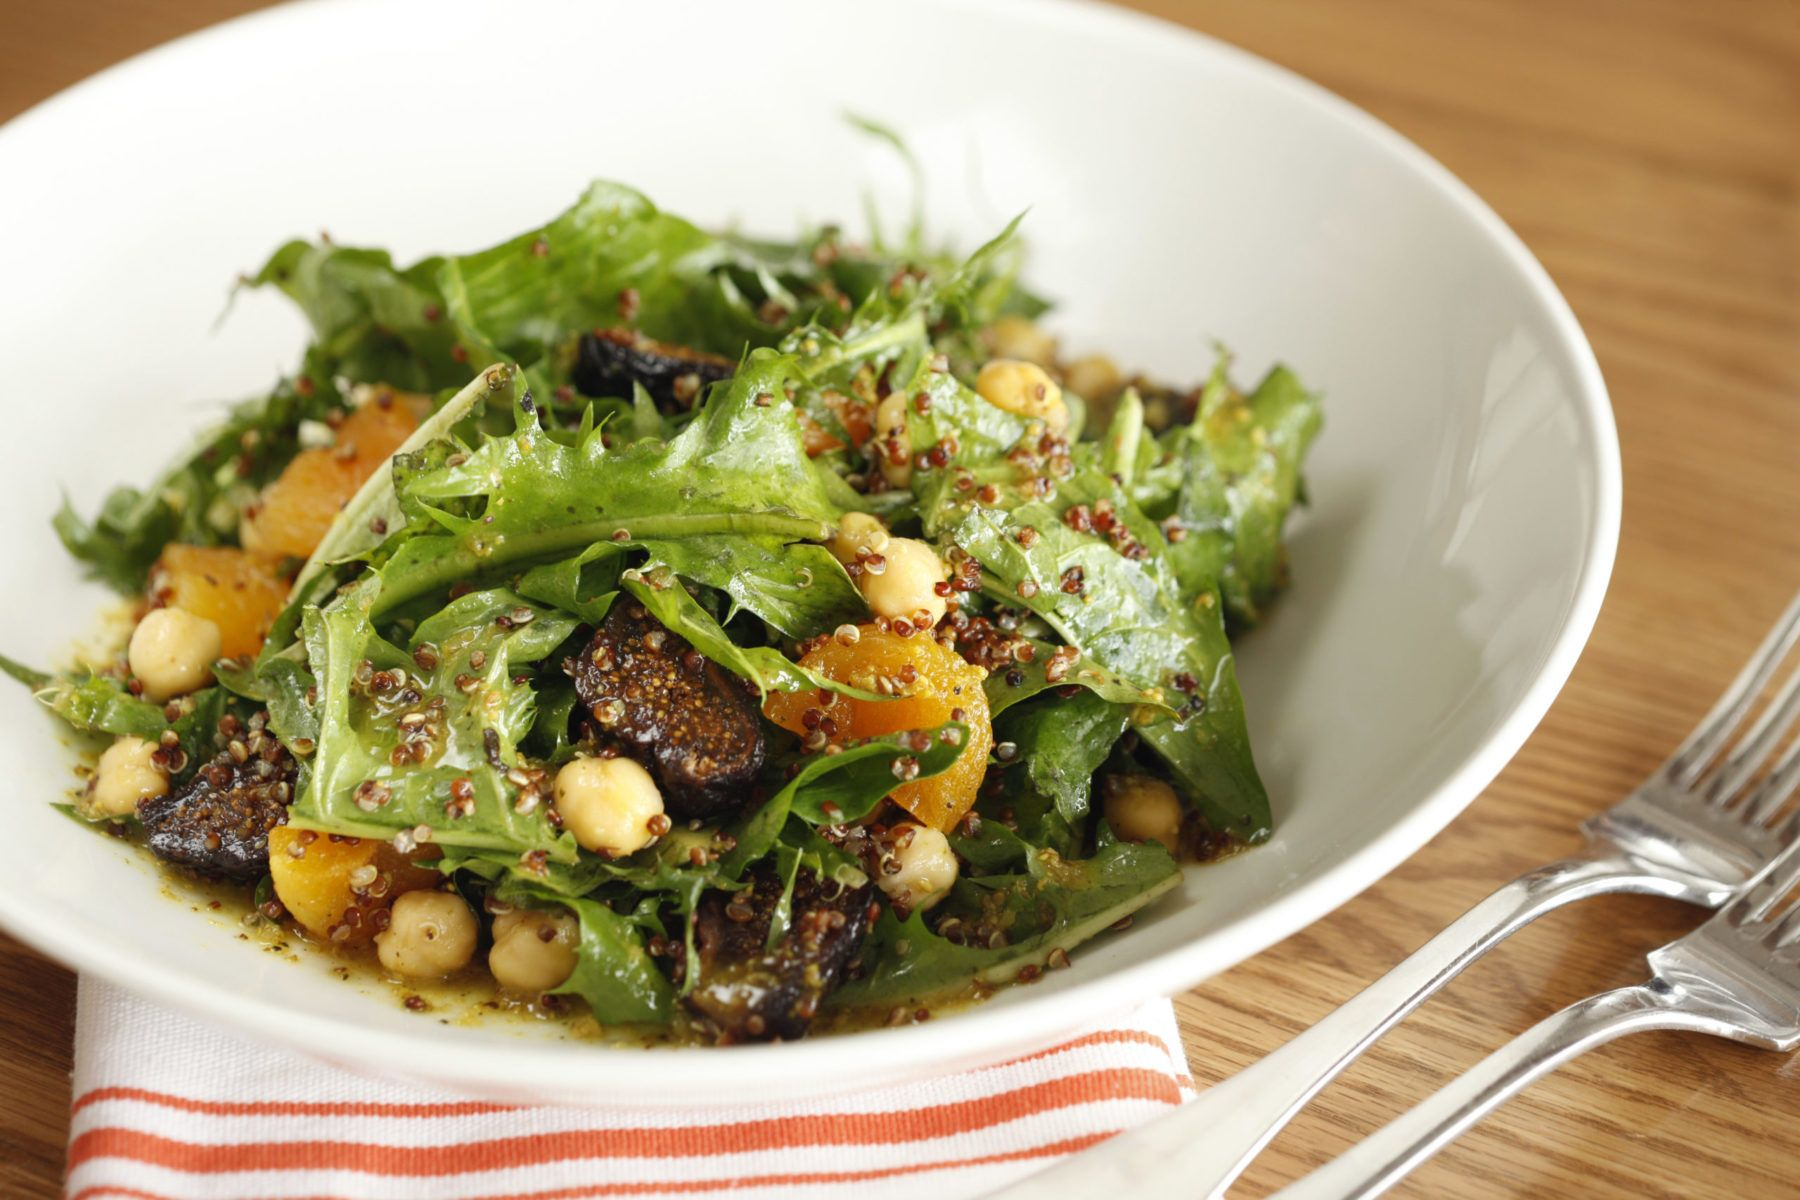 Salad and quinoa in bowl on dinner table